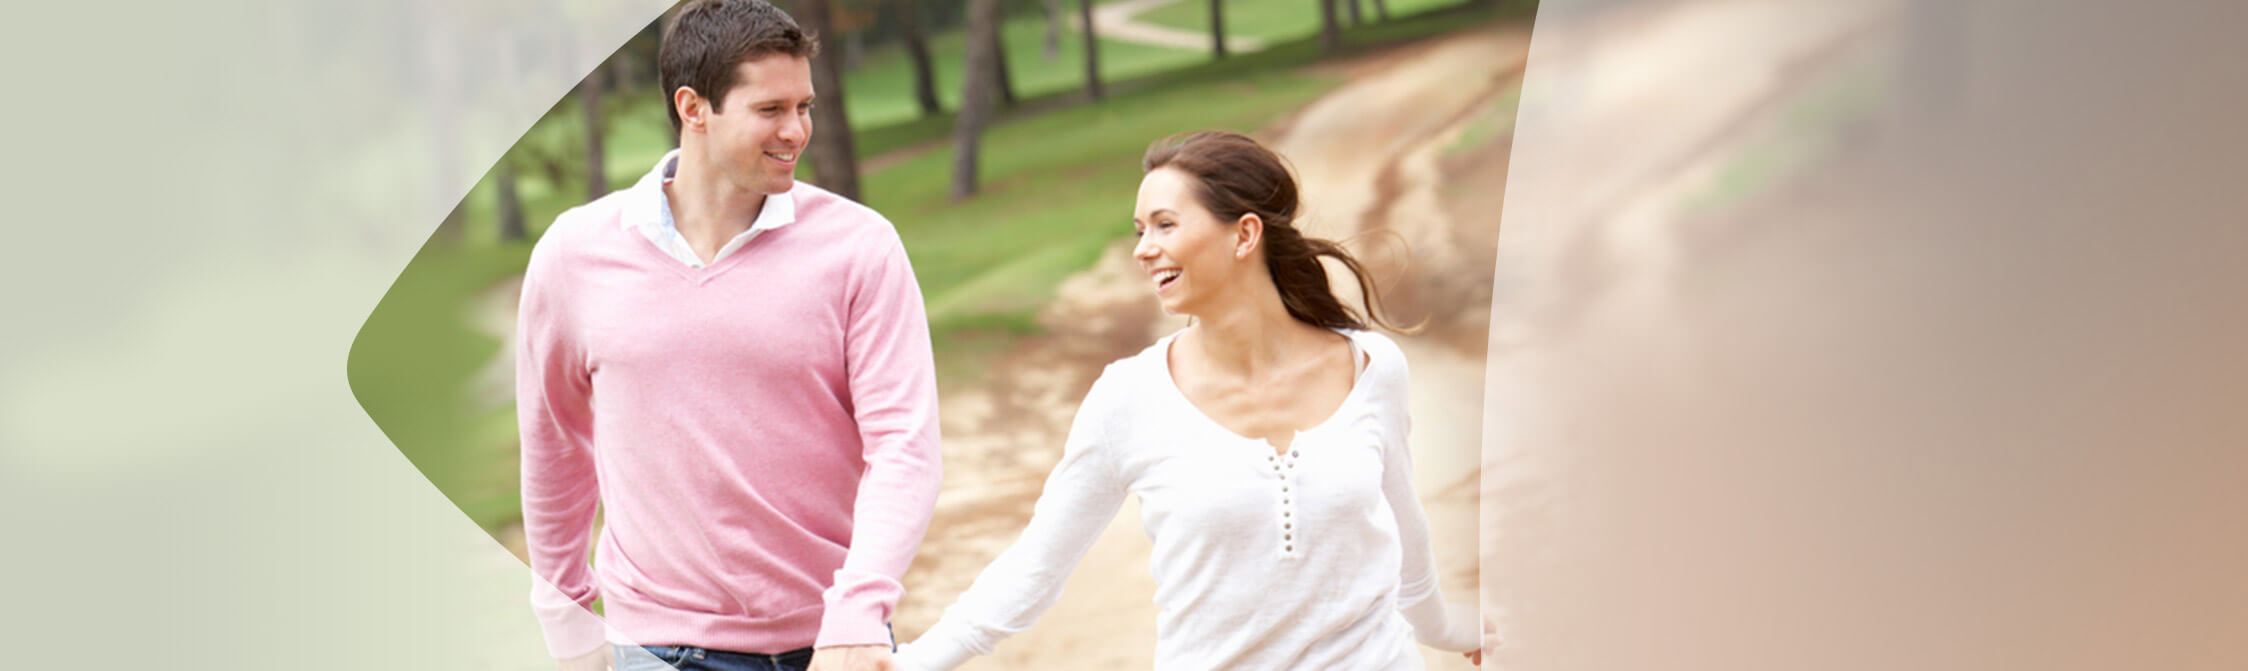 Couple walking together while holding hands and smiling